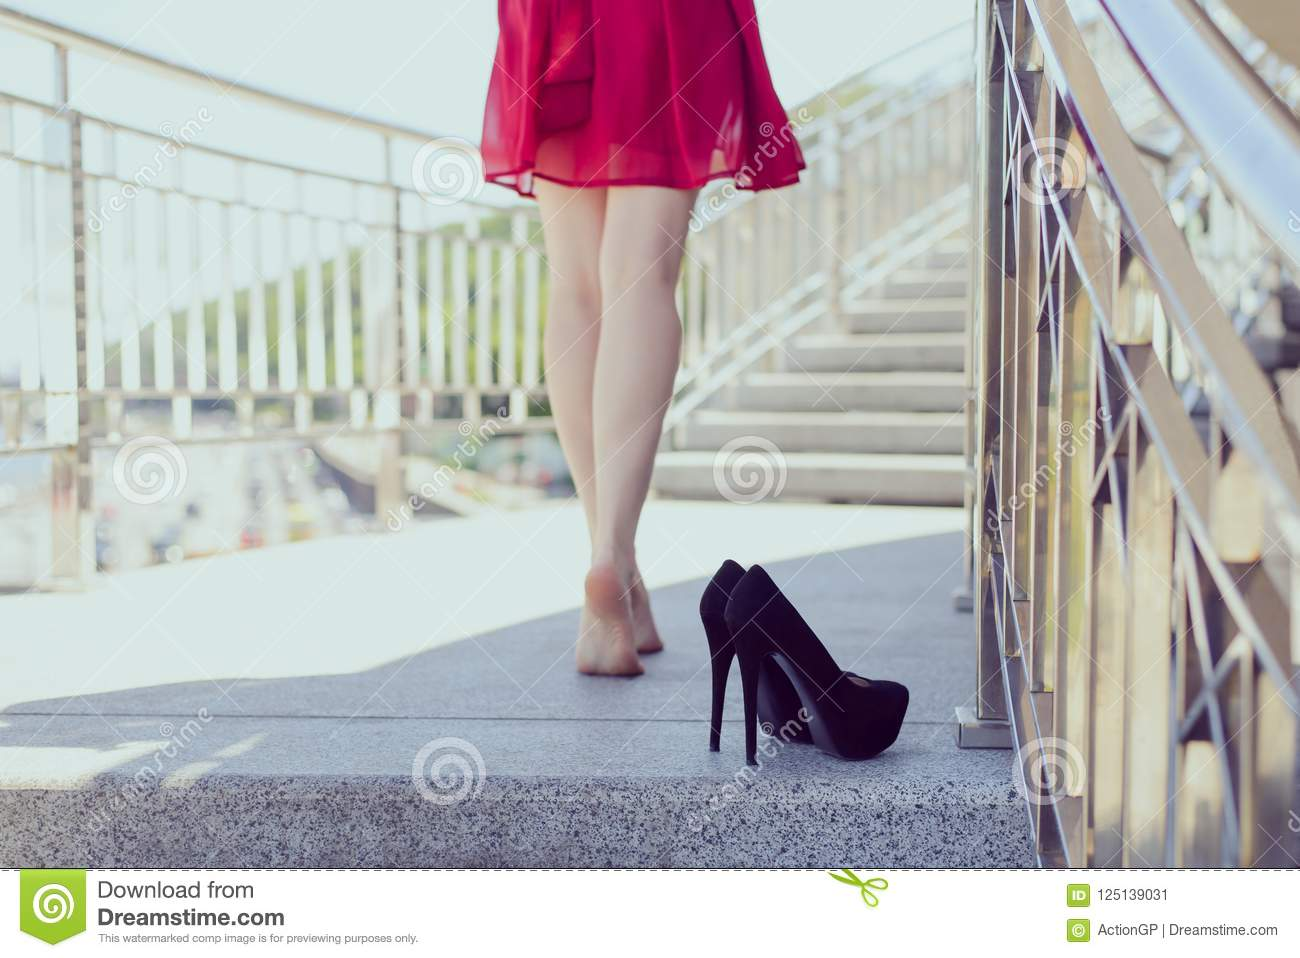 Rear behind back close up photo of fit slim long sexual tempting seductive legs concept. Beautiful carefree pretty happy girl